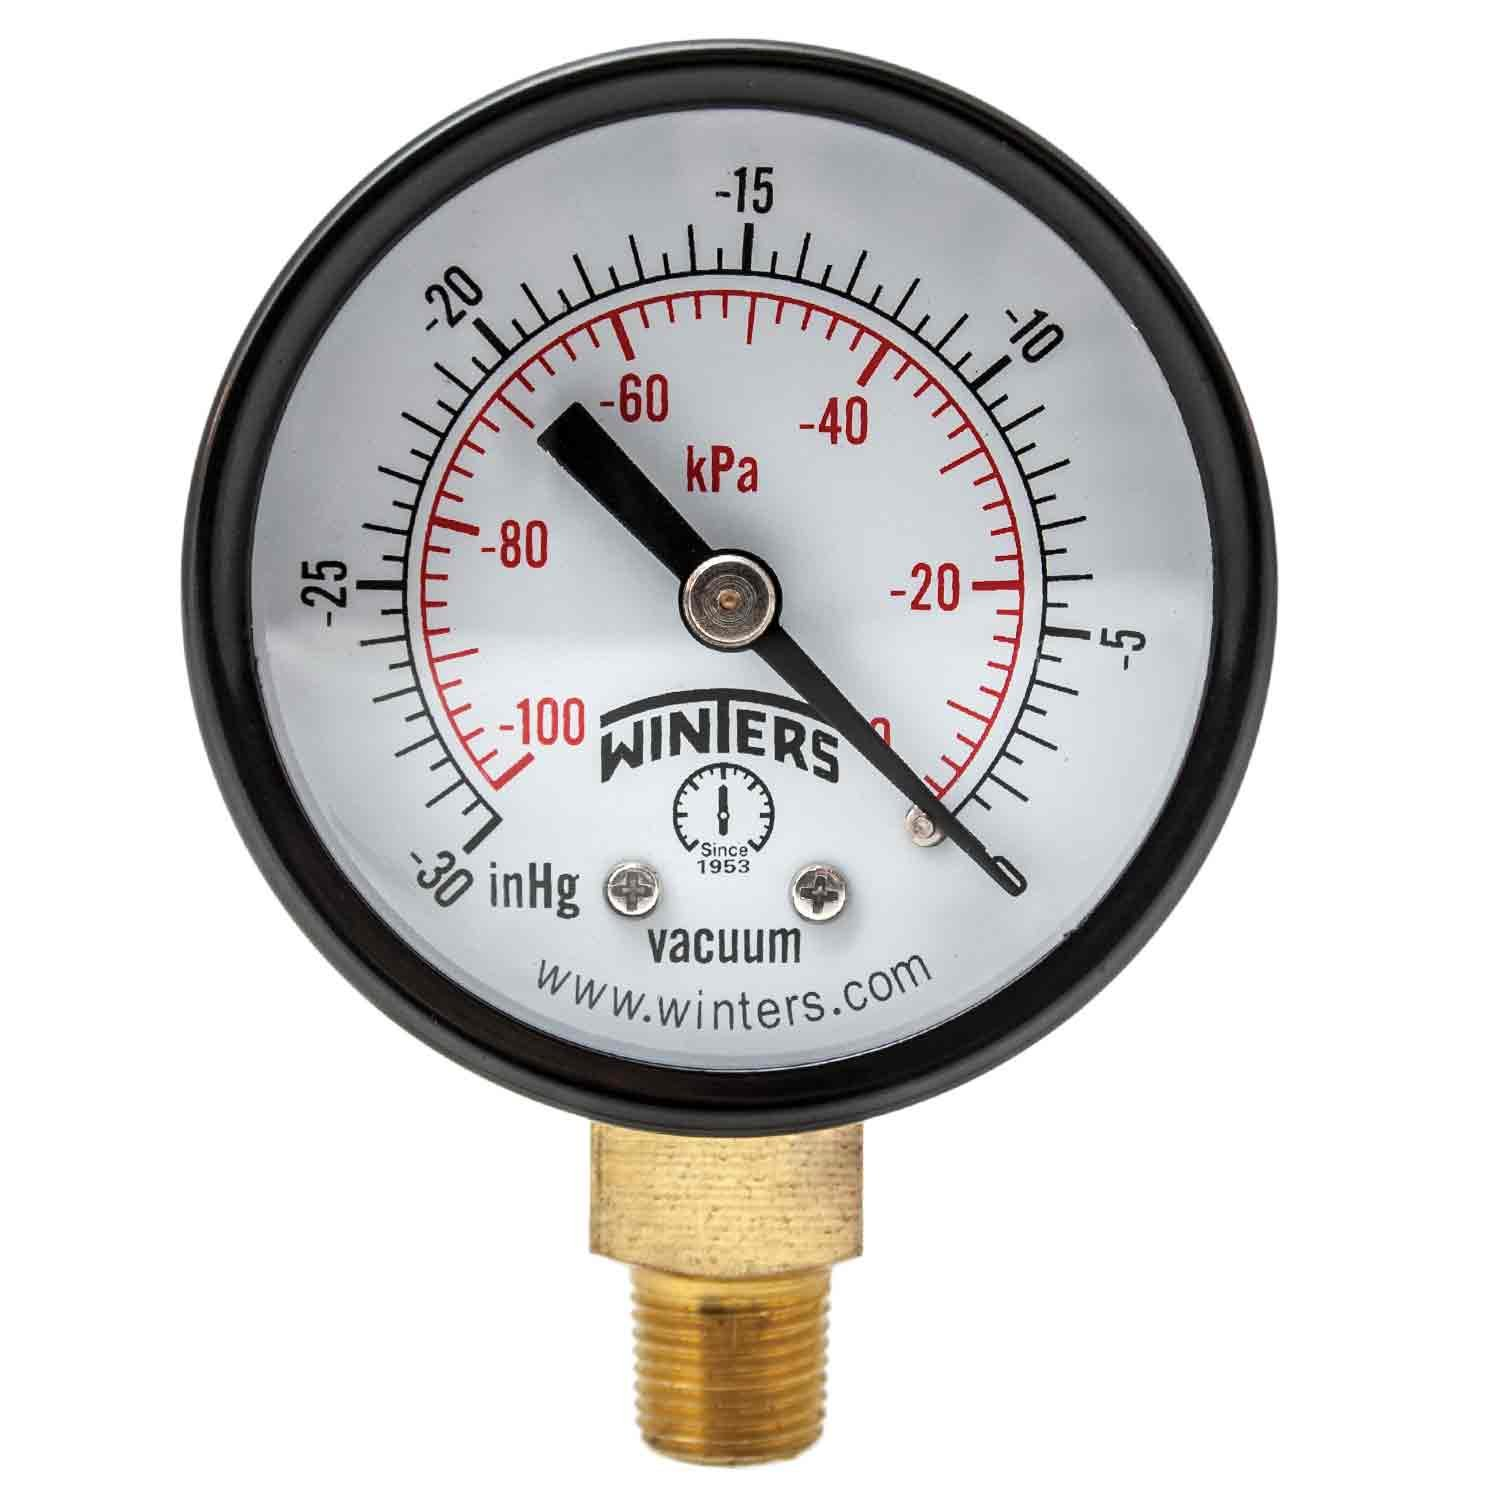 "Winters PEM Series Steel Dual Scale Economical All Purpose Pressure Gauge with Brass Internals, 30""Hg Vacuum/kpa, 2"" Dial Display, +/-3-2-3% Accuracy, 1/8"" NPT Bottom Mount"